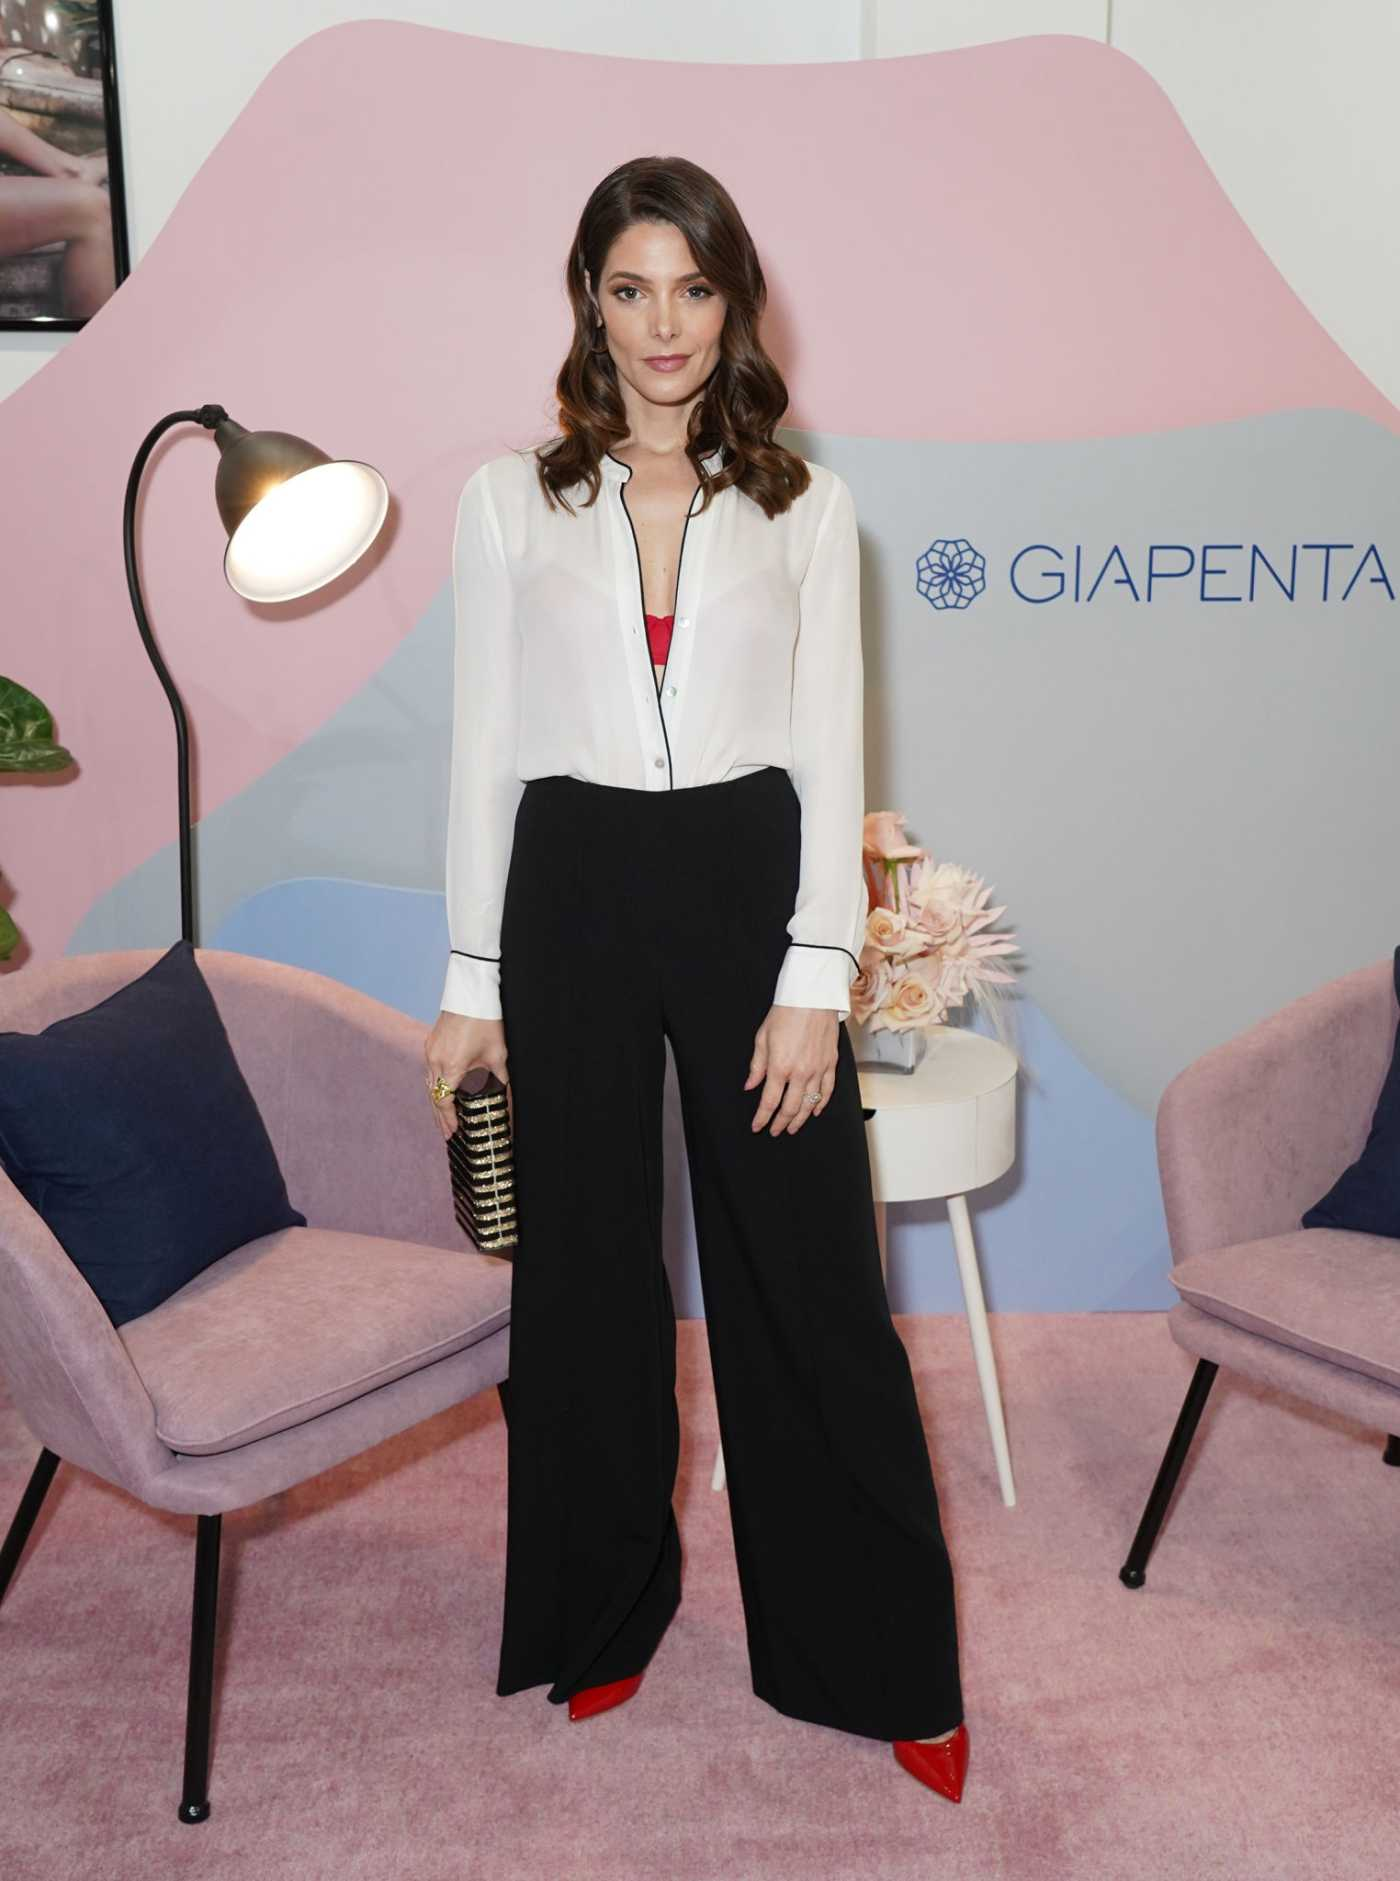 Ashley Greene Attends the Giapenta Wynwood Pop-Up Shop in Miami 02/27/2020